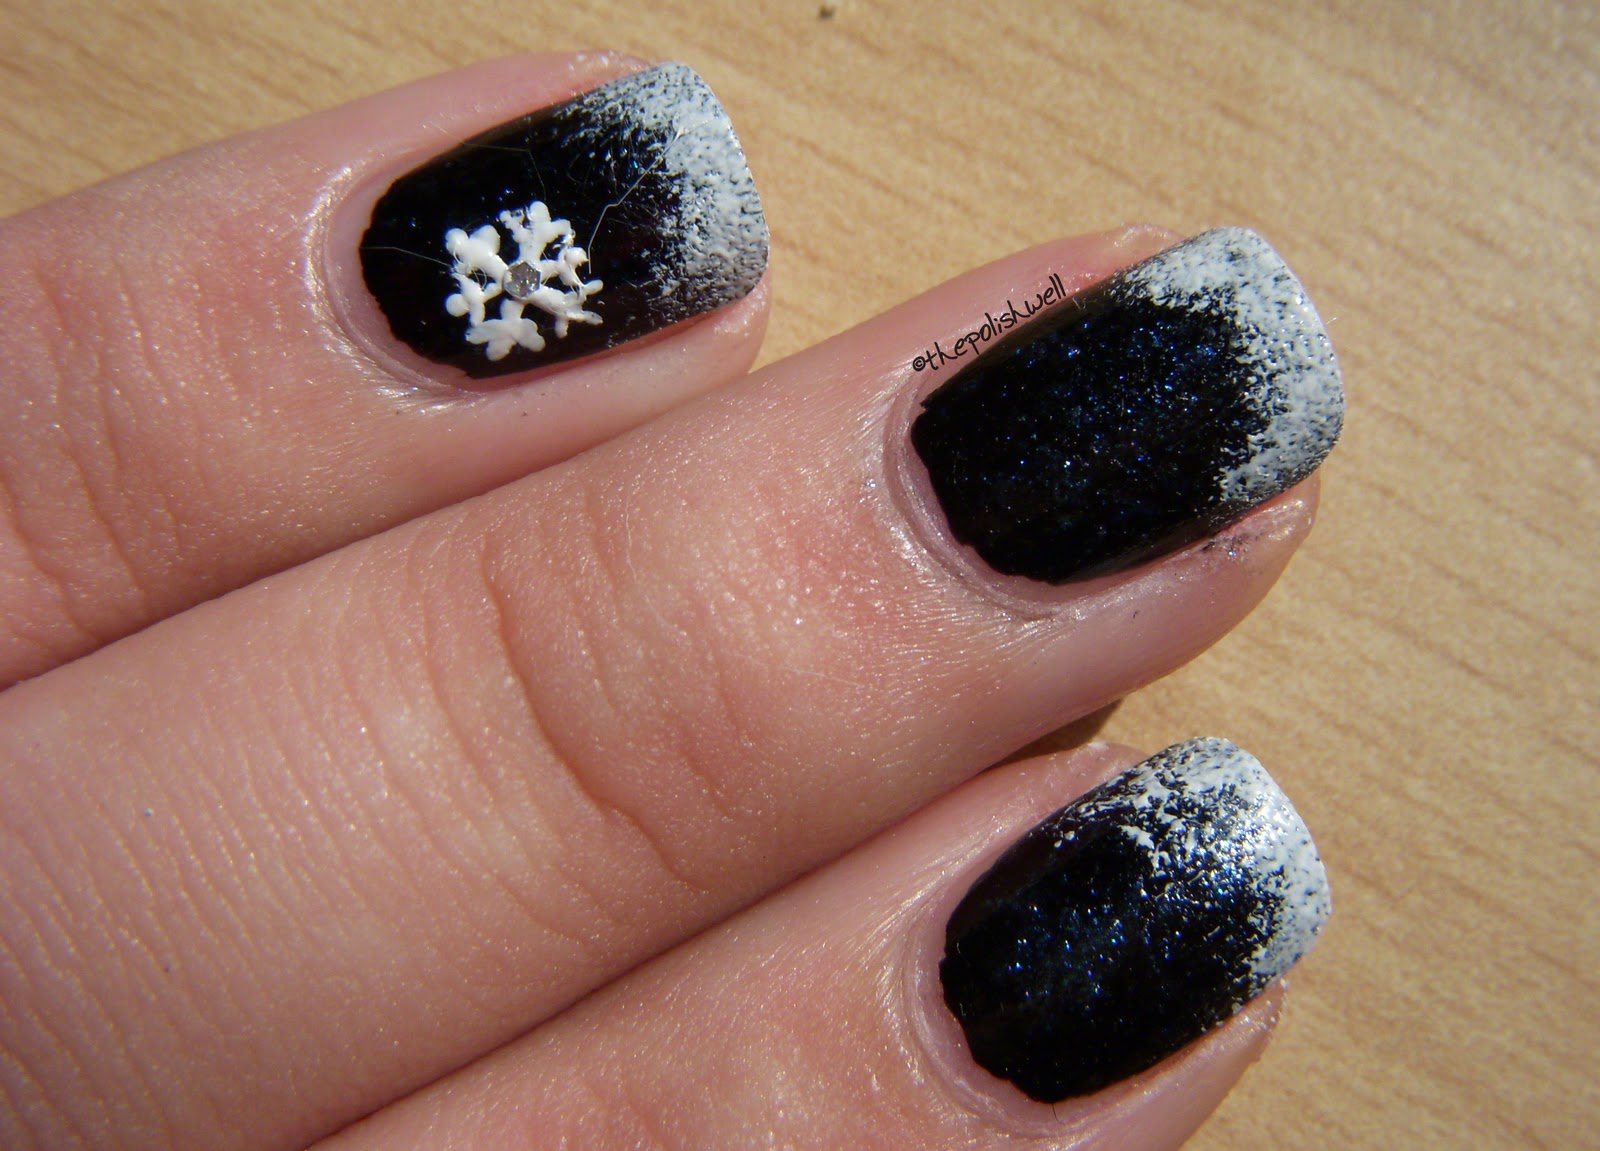 The Polish Well: 12 Days of Christmas: Day 4 - Snowflakes!